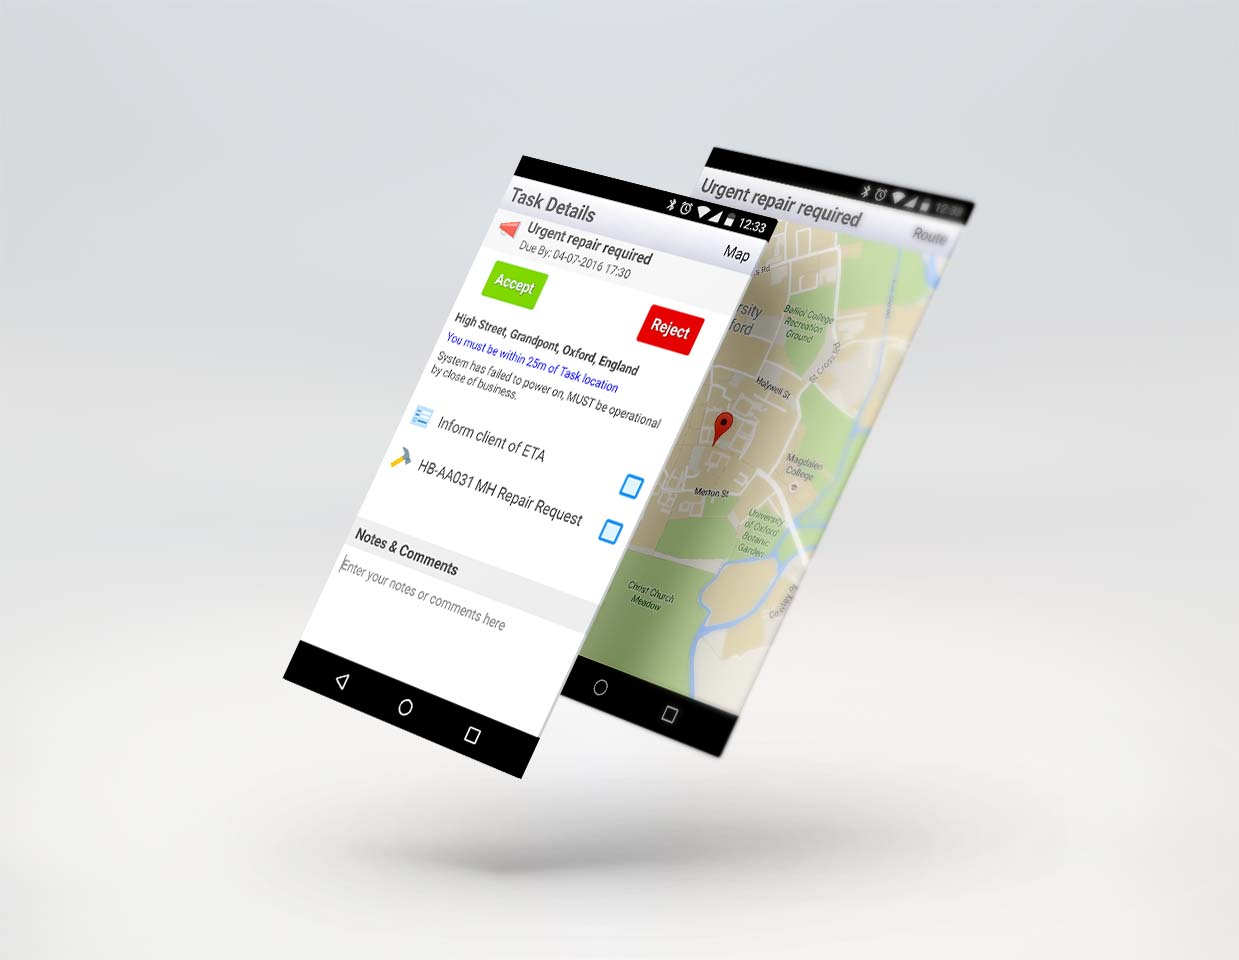 Assign tasks and jobs to mobile works with location and directions